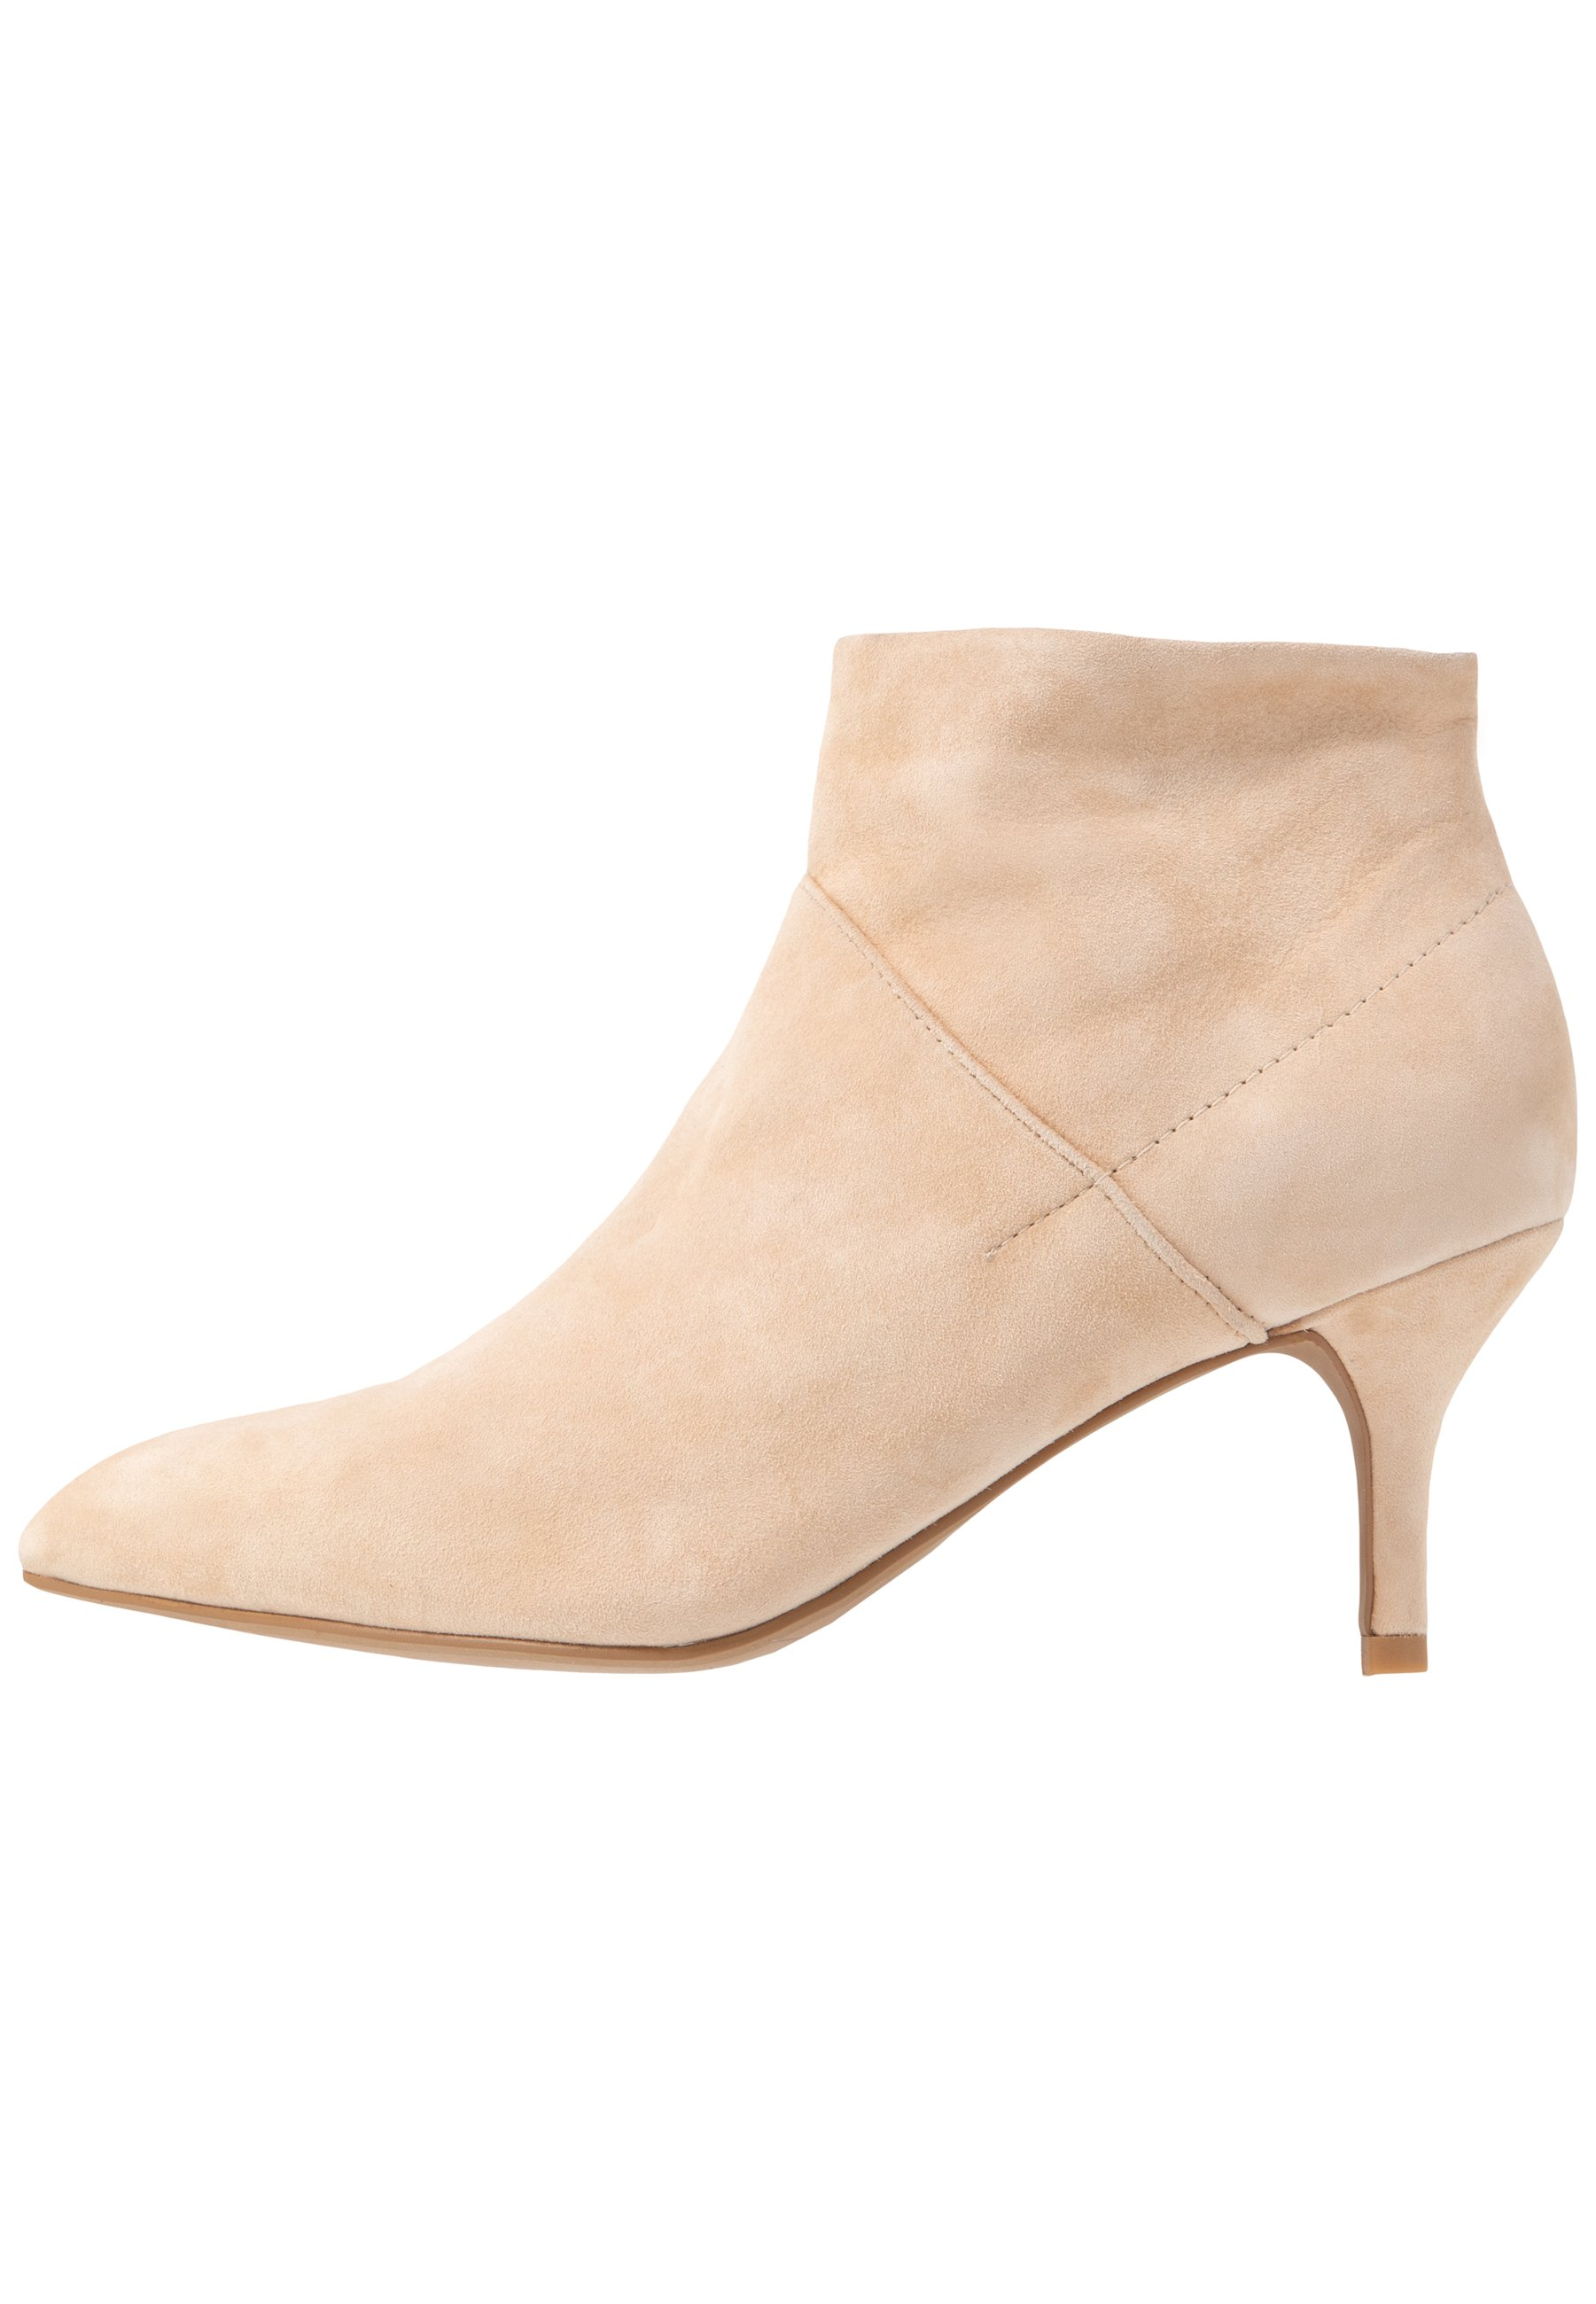 Shoe The Bear VALENTINE - Ankle boot - nude